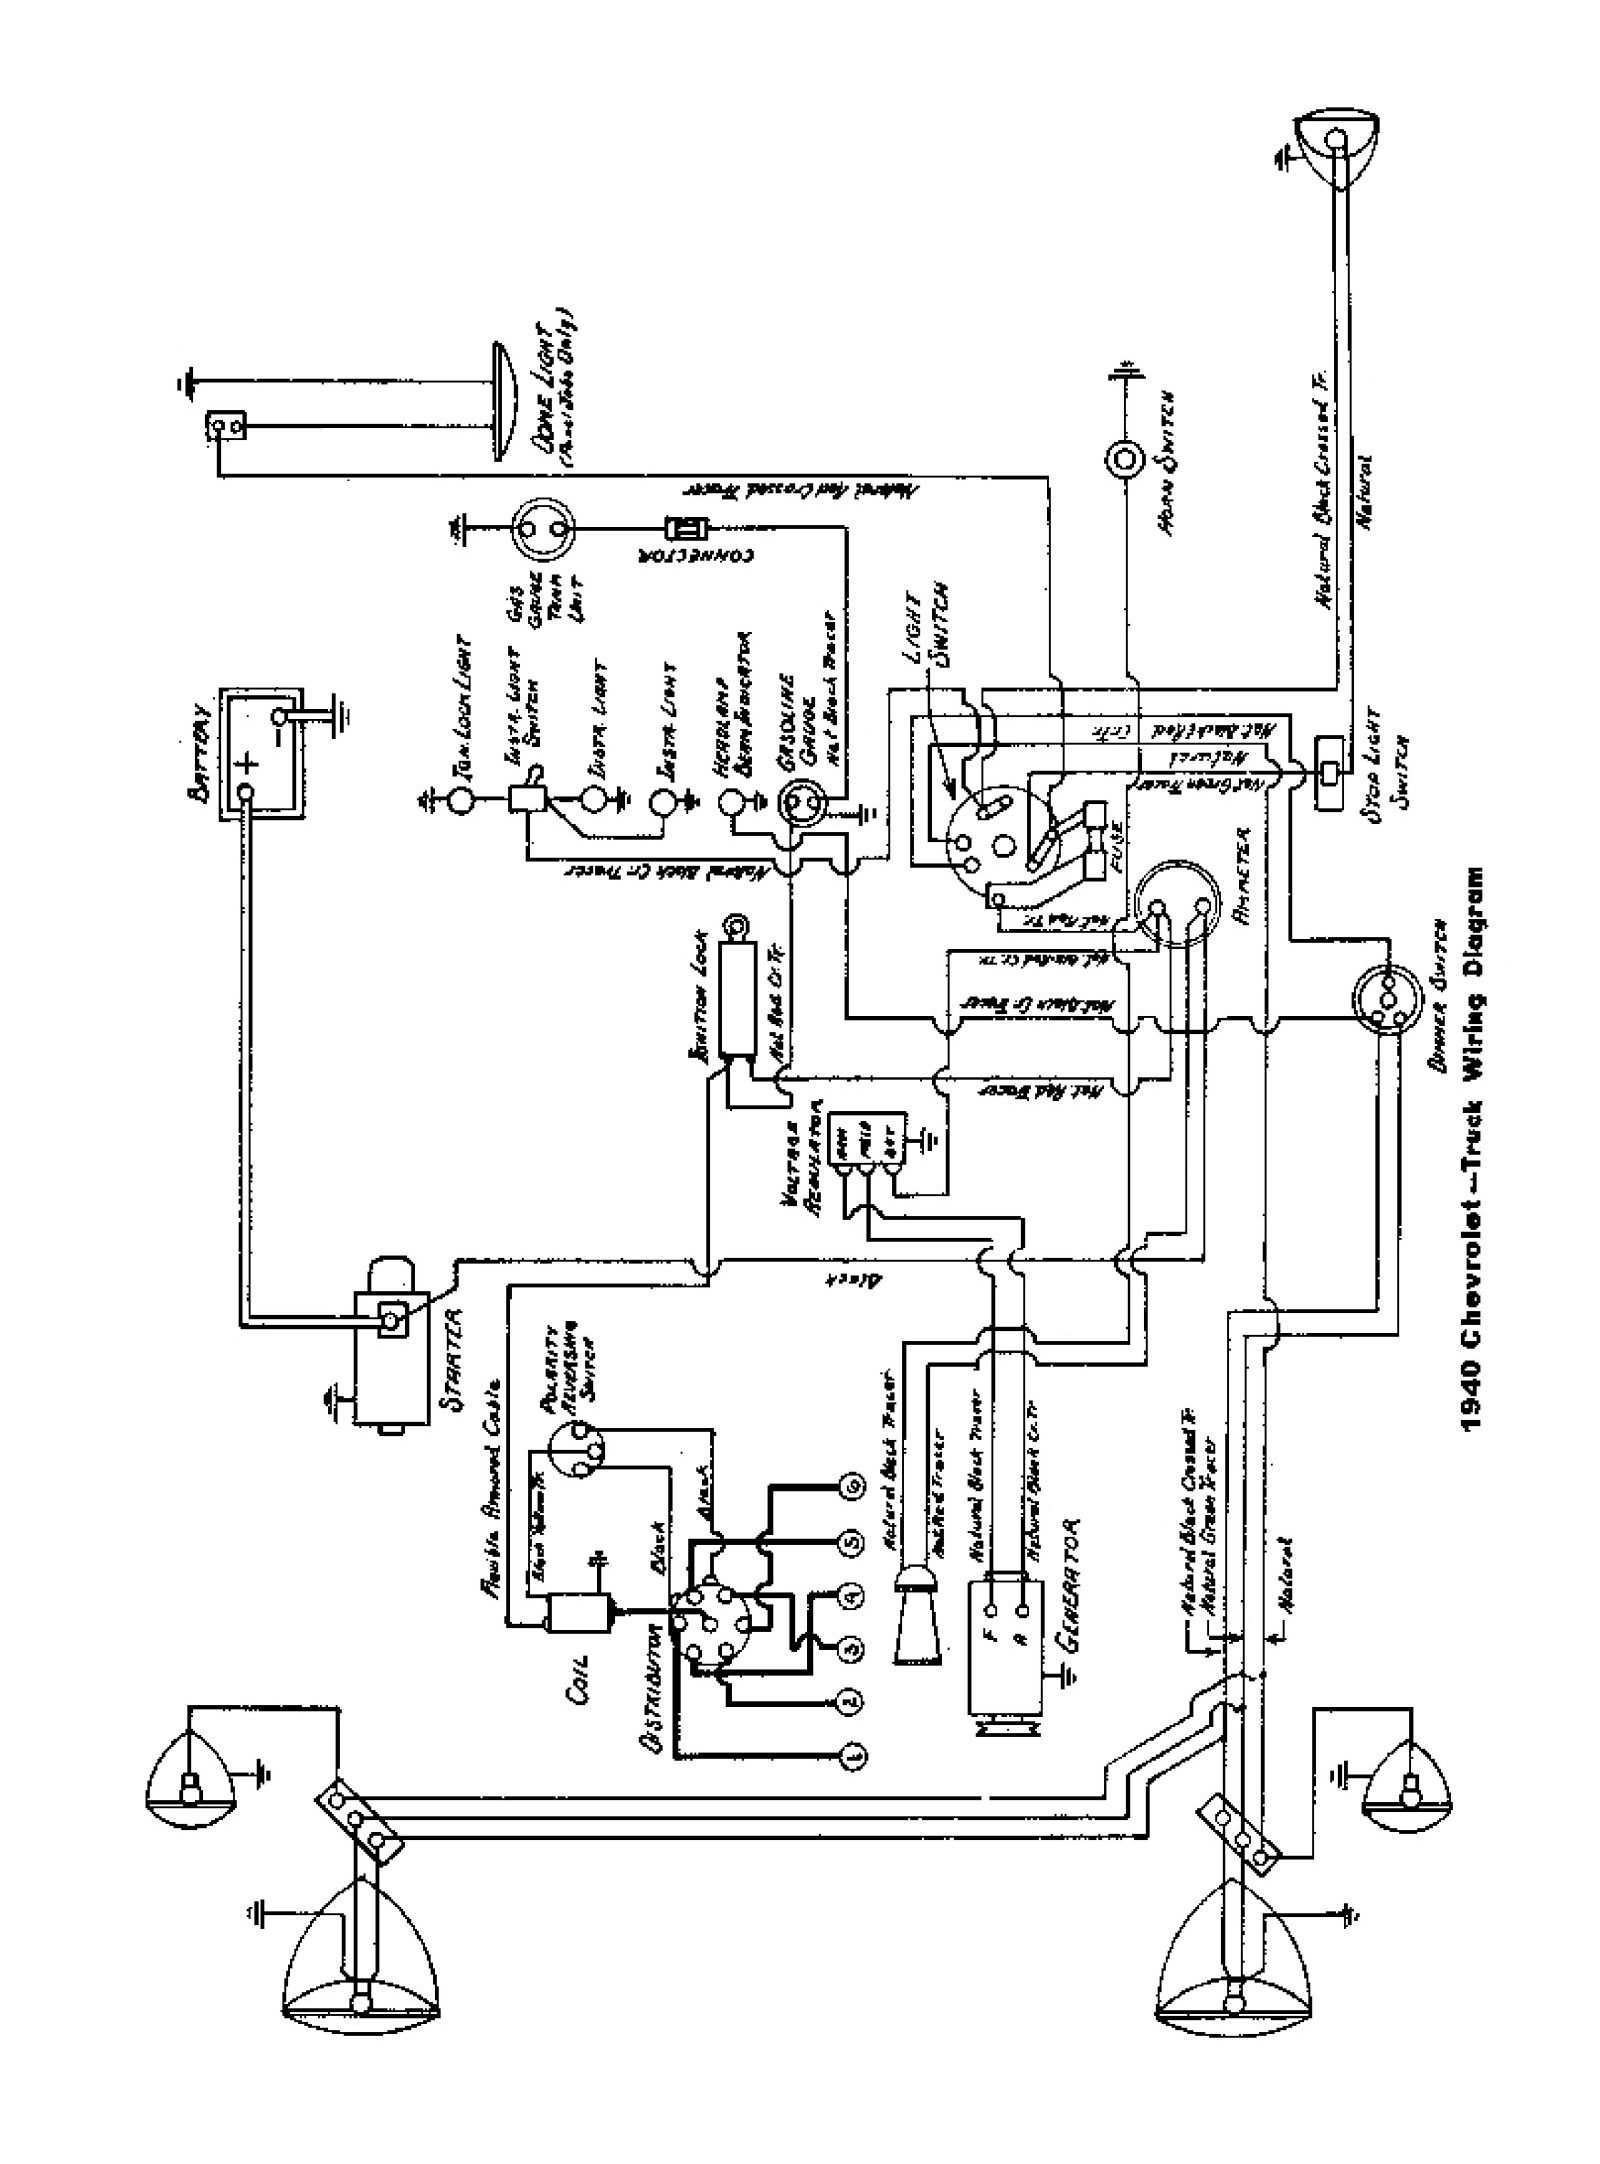 1995 chevy truck ignition coil wiring diagram irs 1993 Chevy S10 wiring diagram for 1972 chevy truck ireleast chevy ignition switch wiring diagram 1990 chevy c1500 ignition